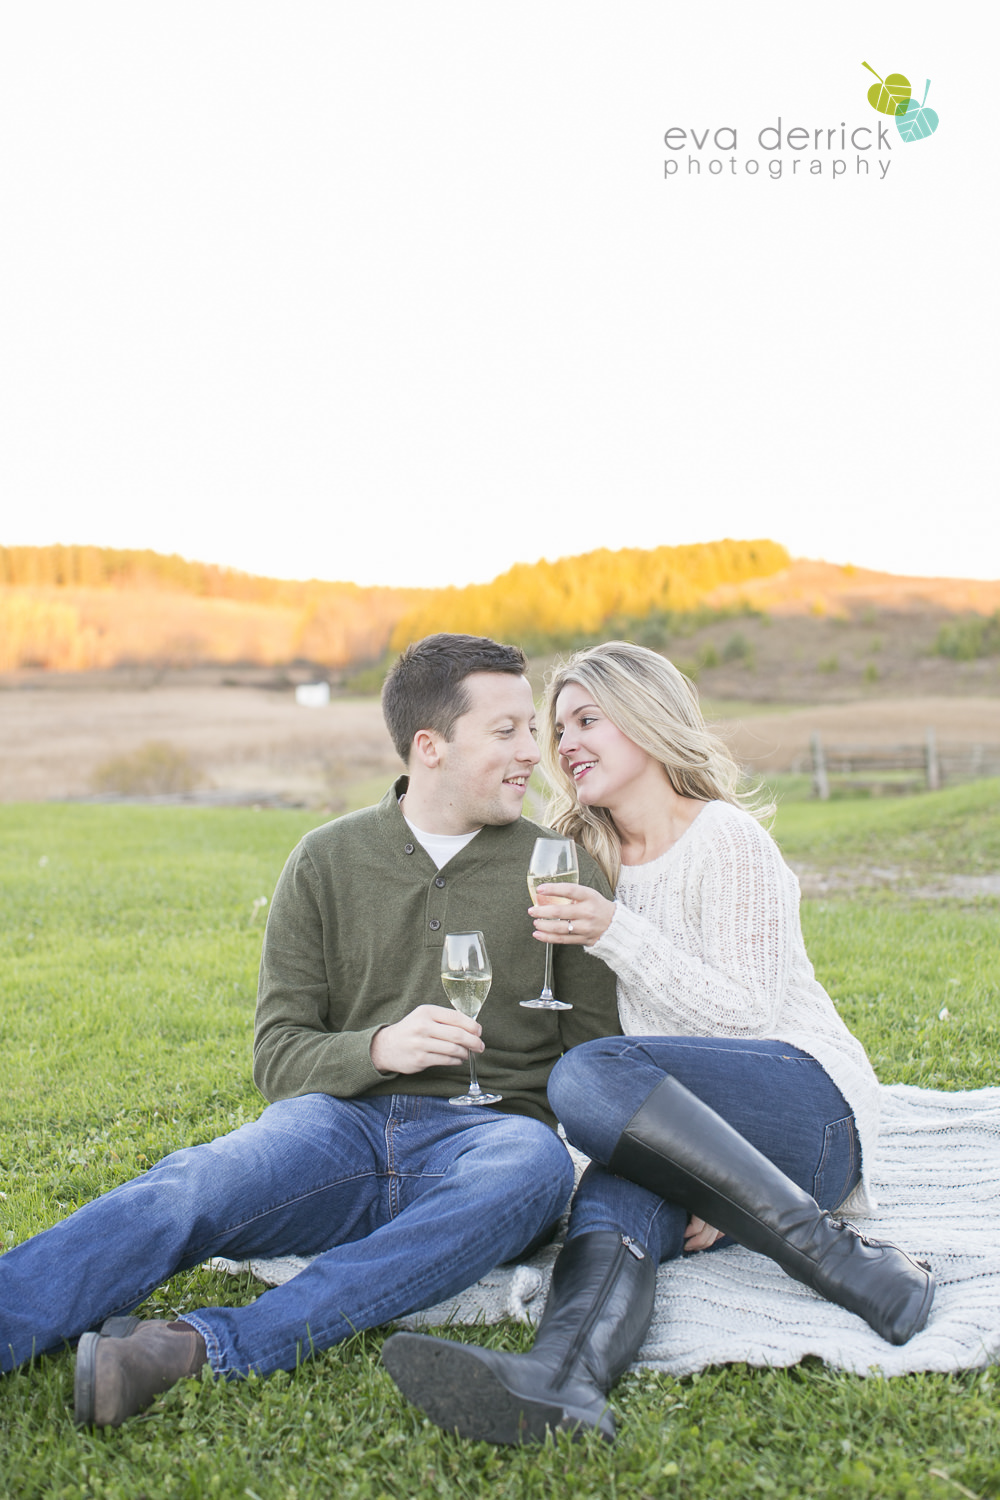 Albion-Hills-Photographer-Engagement-Session-Alanna-Matt-photography-by-Eva-Derrick-Photography-019.JPG